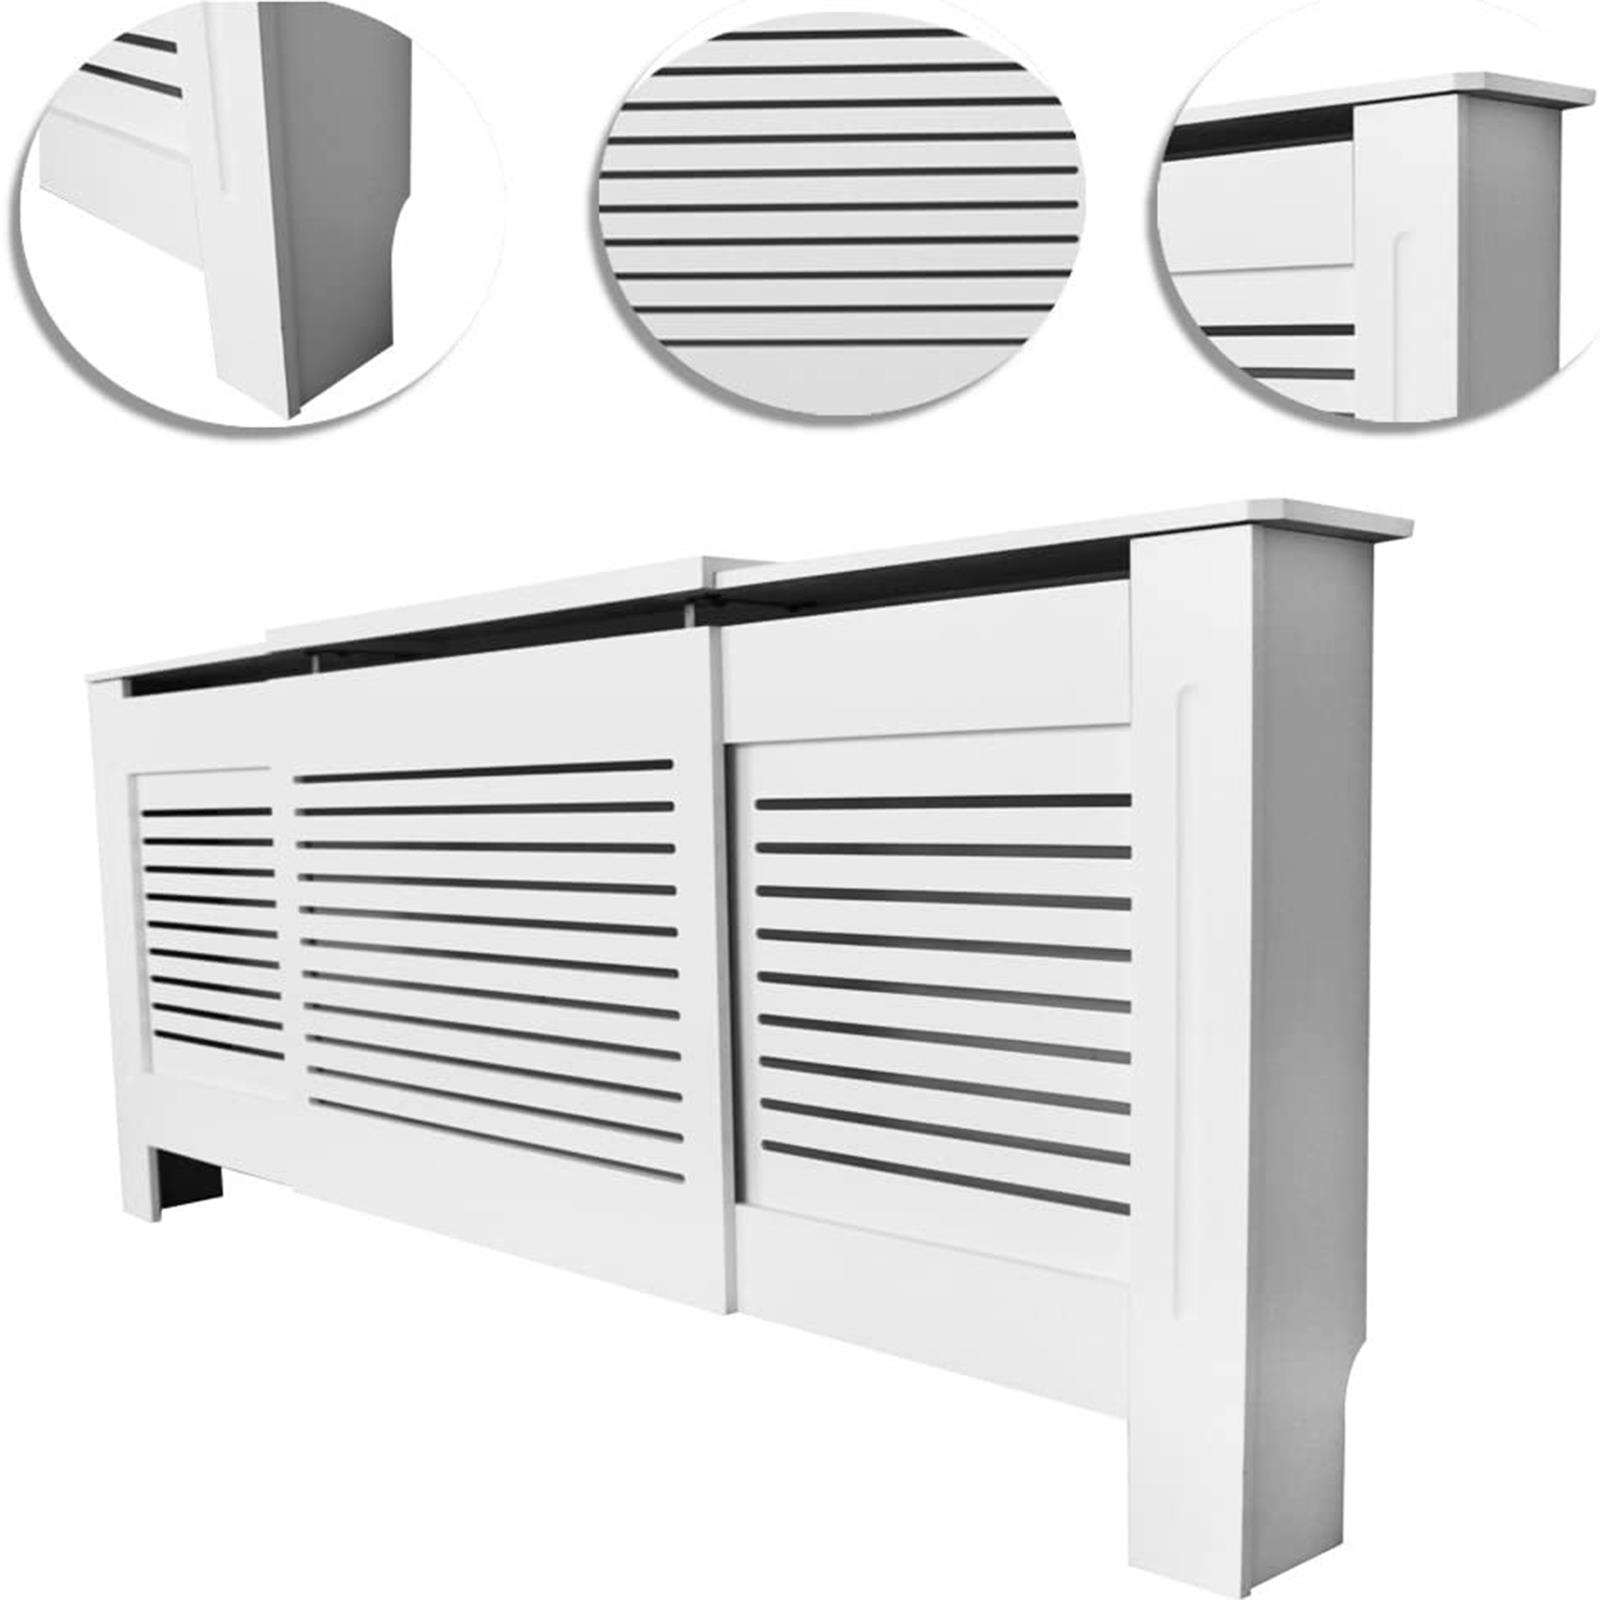 White-Radiator-Cover-Cabinet-Small-Large-Modern-MDF-Slat-Wood-Grill-Furniture miniatuur 25